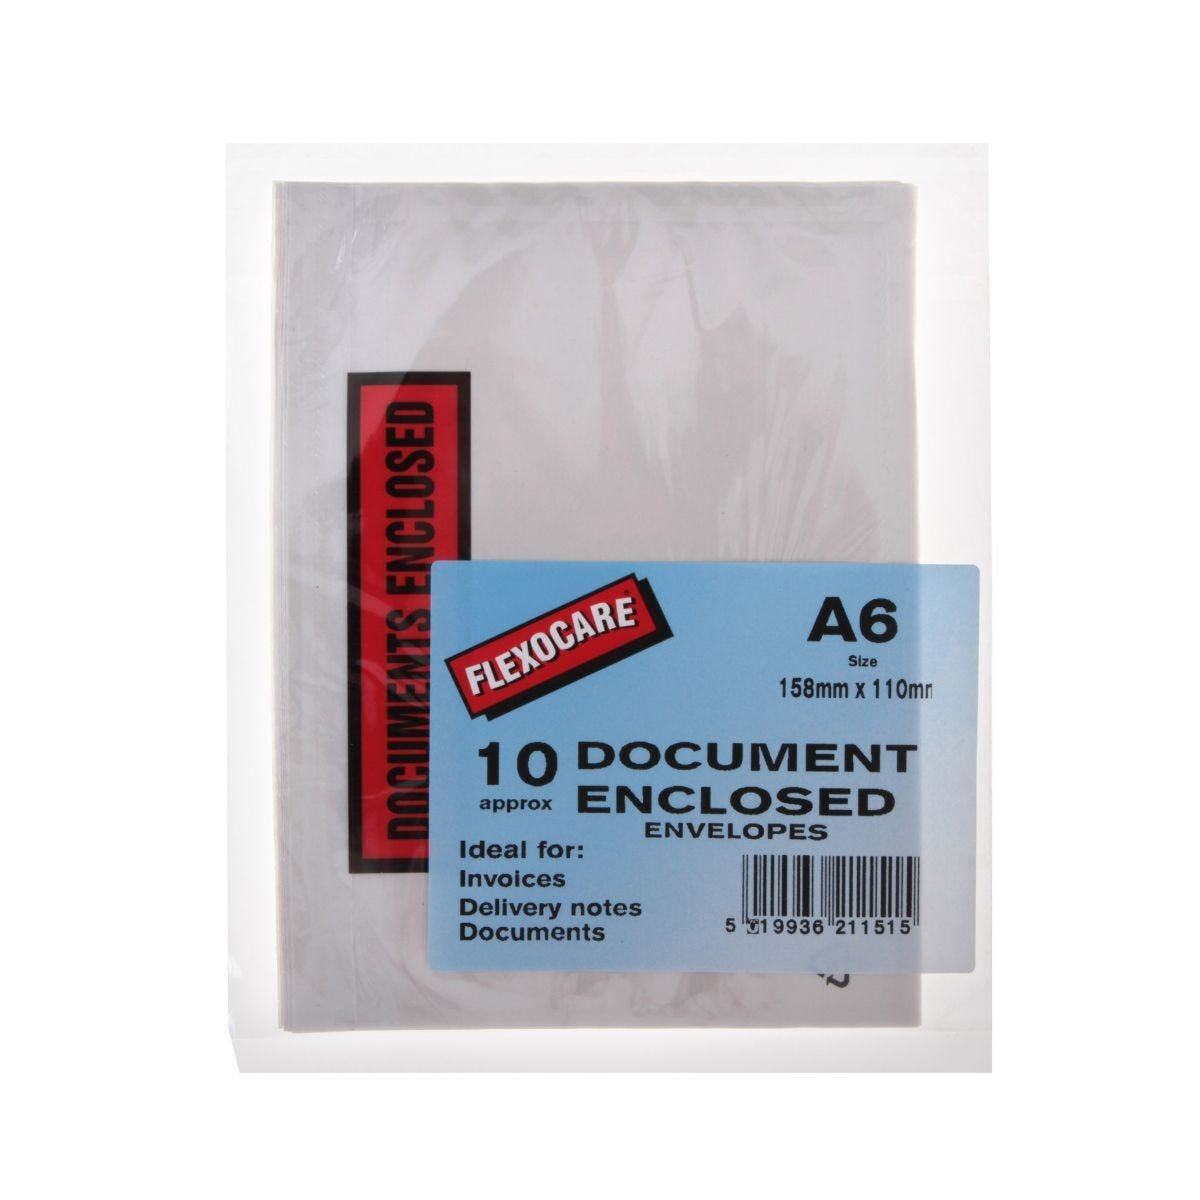 Flexocare Document Enclosed White Envelopes A6 - Pack of 10